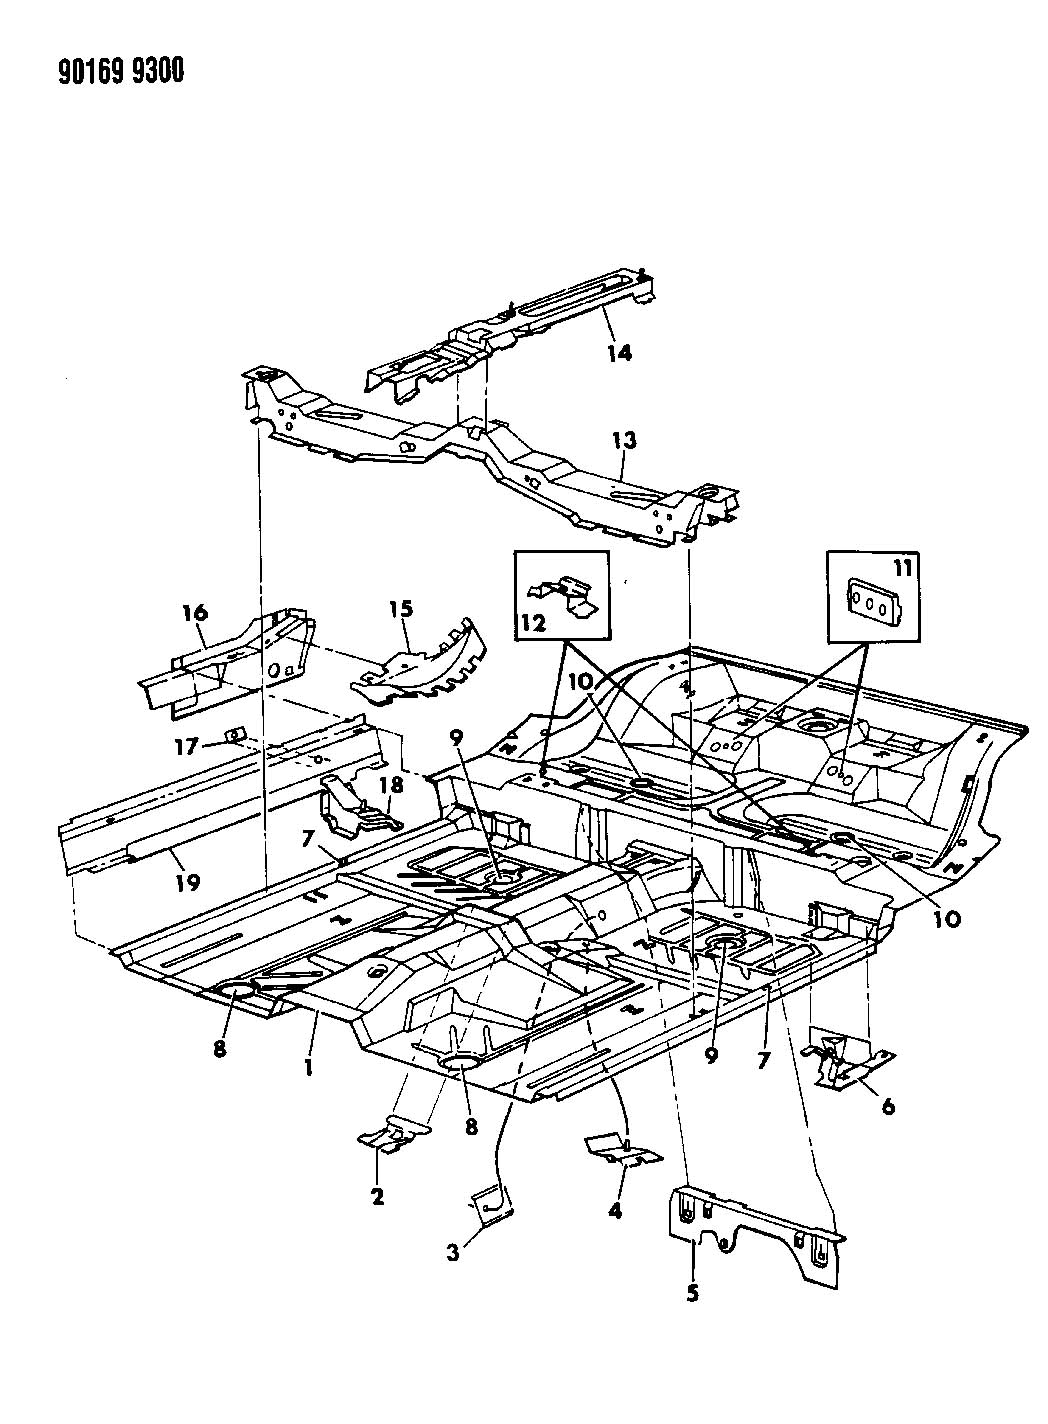 2012 chrysler town and country engine diagram best wiring library Basic Car Engine Diagram related with how a car engine works diagram